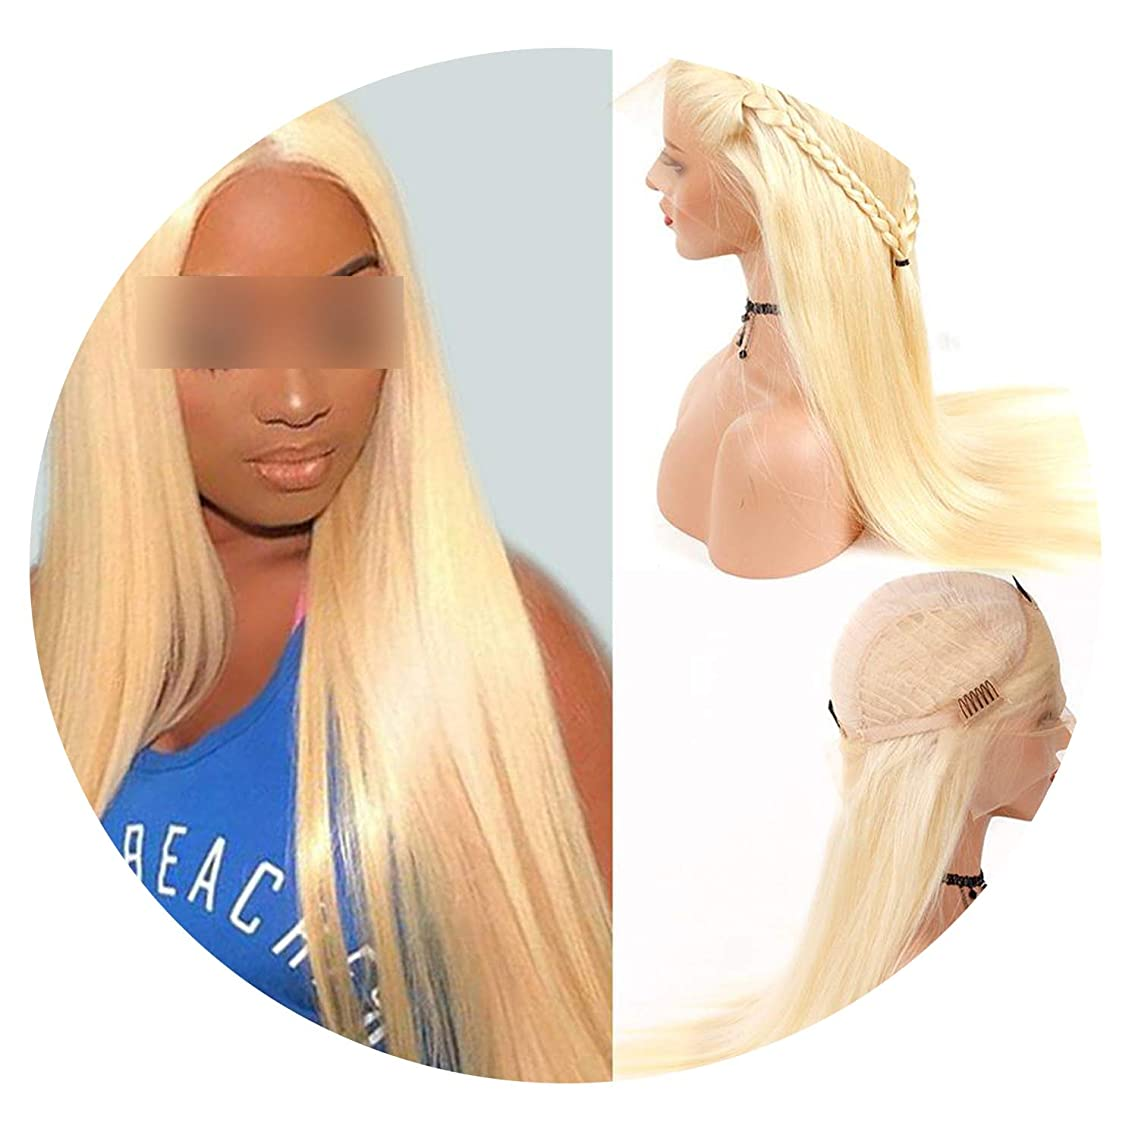 613 Honey Blonde Lace Front Human Hair Wigs Remy 150% Density Brazilian Straight Hair 13X4 Lace Frontal Wigs 613 Blonde Hair Wig,#613,6Inches,150%